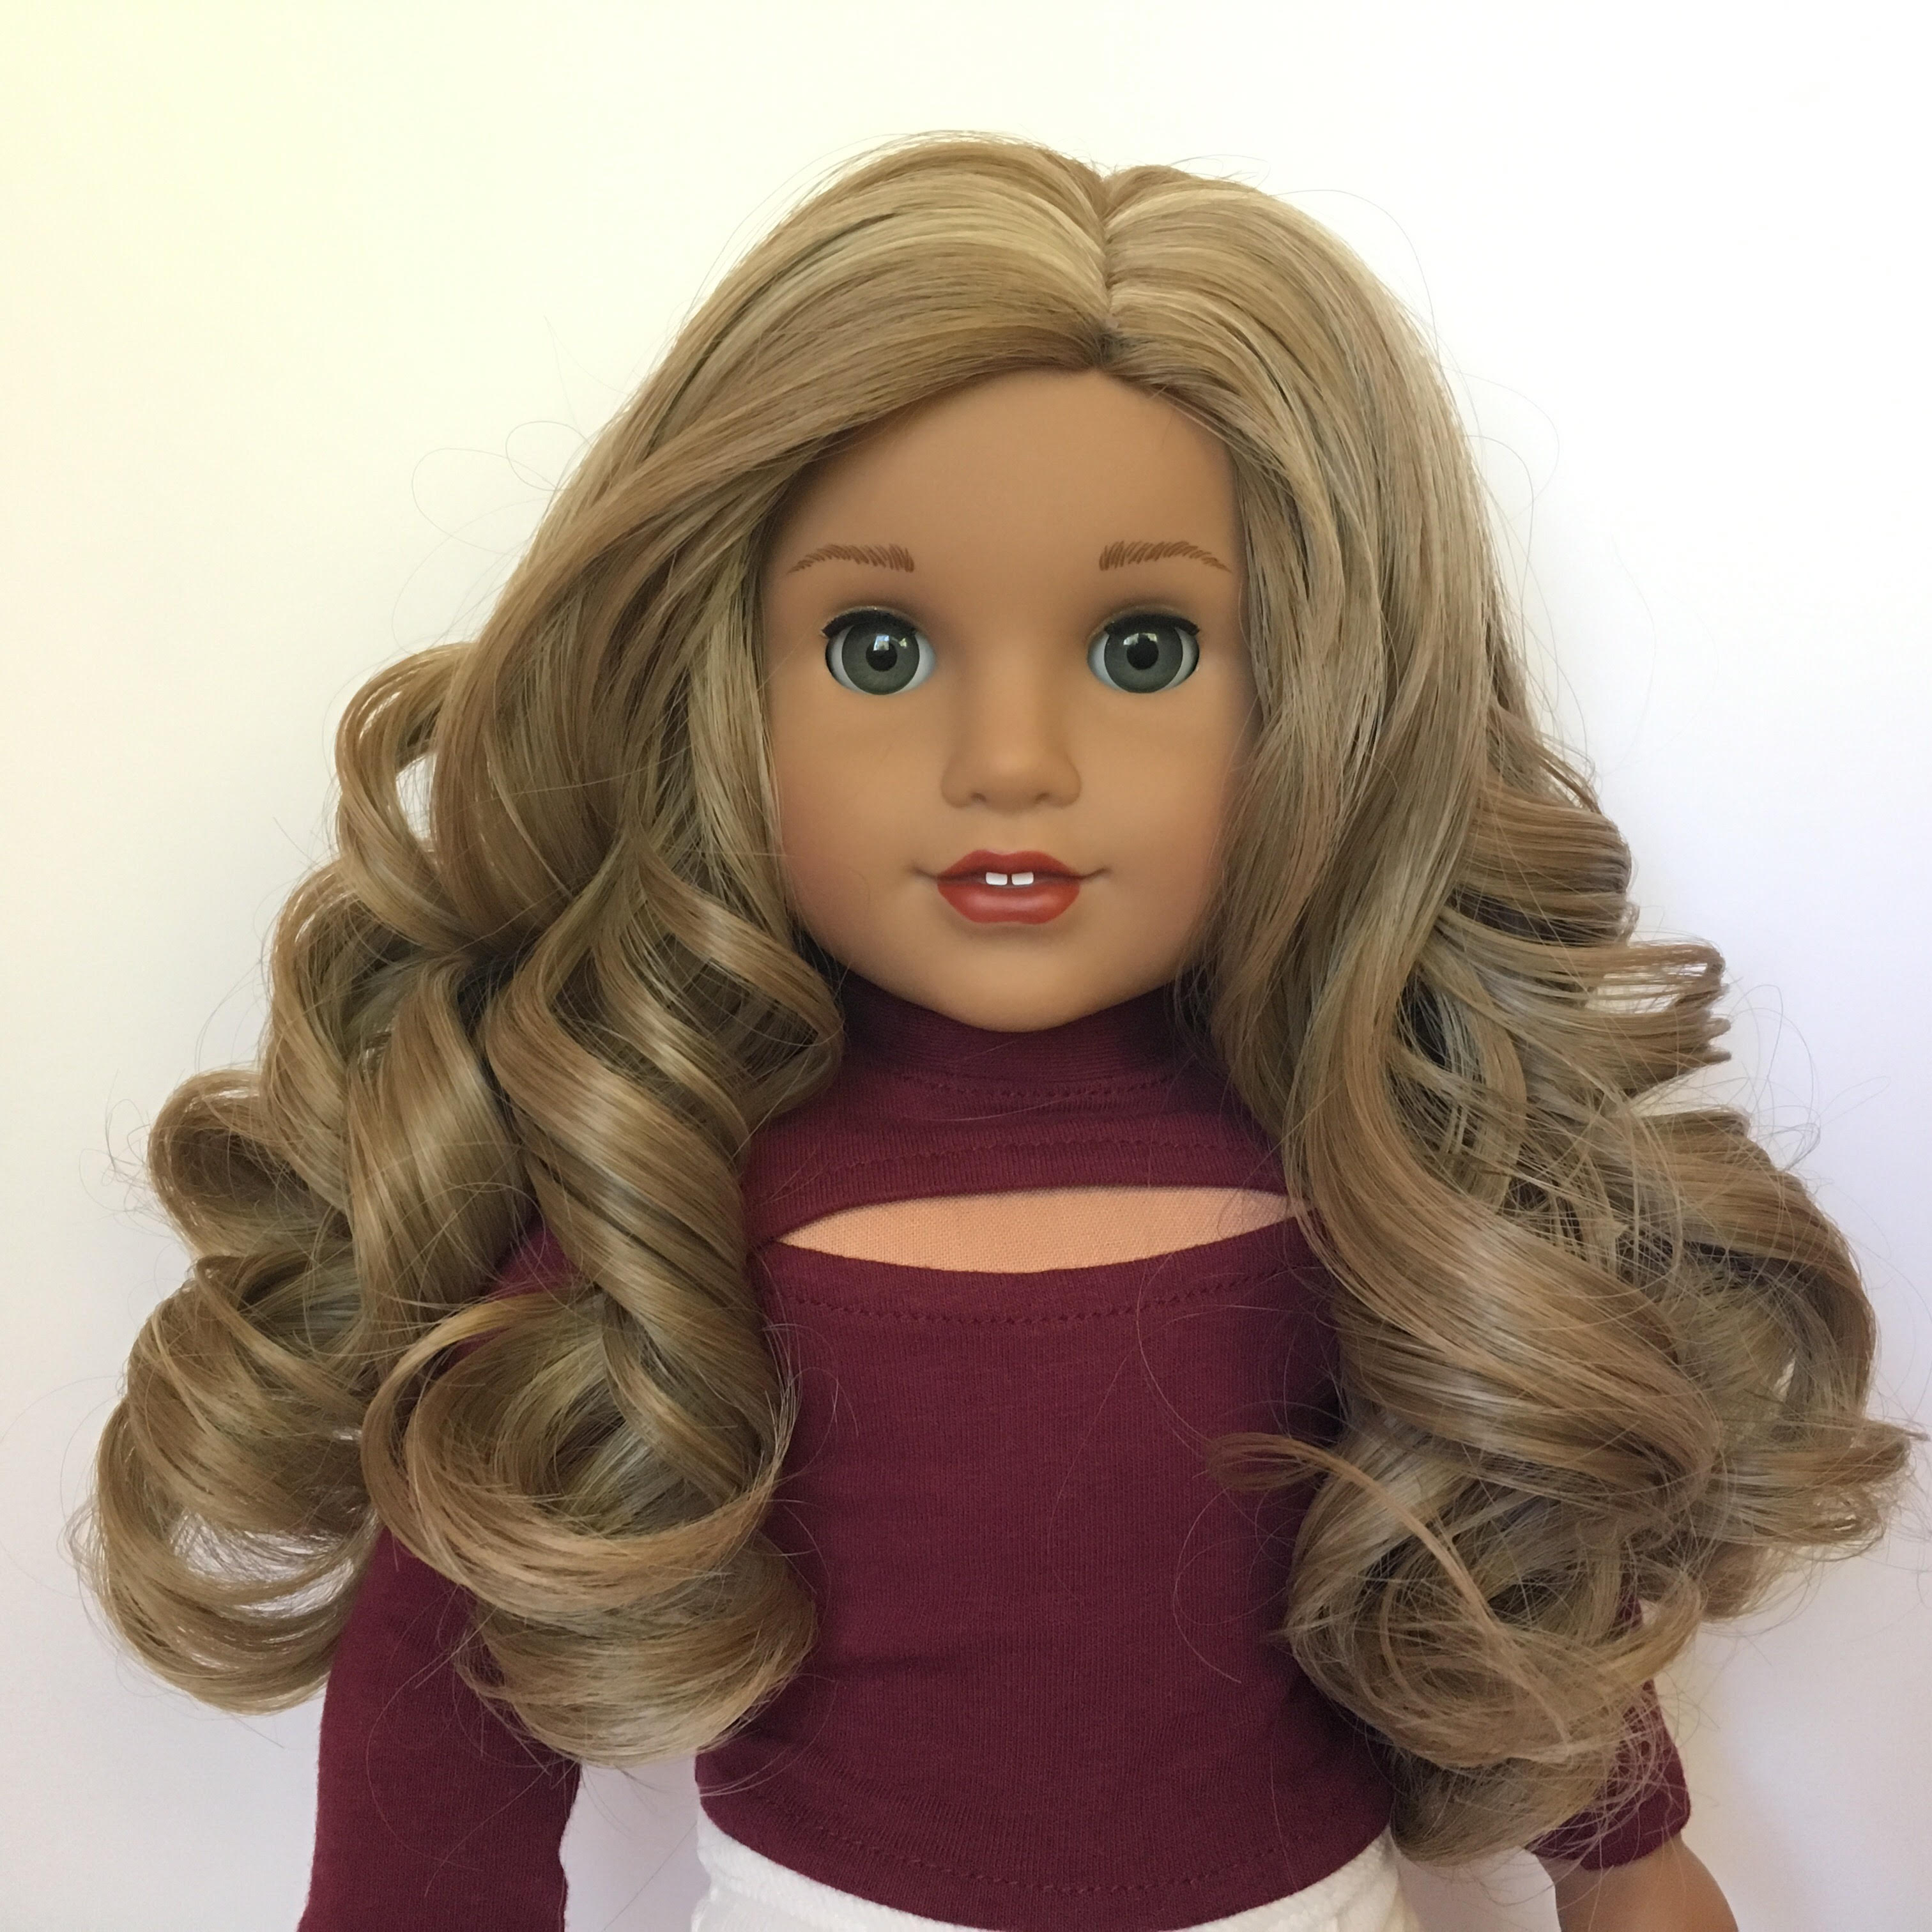 Zazou Dolls Exclusive Lovely WIG Golden Wheat for 18 Inch dolls such as Journey and American Girl